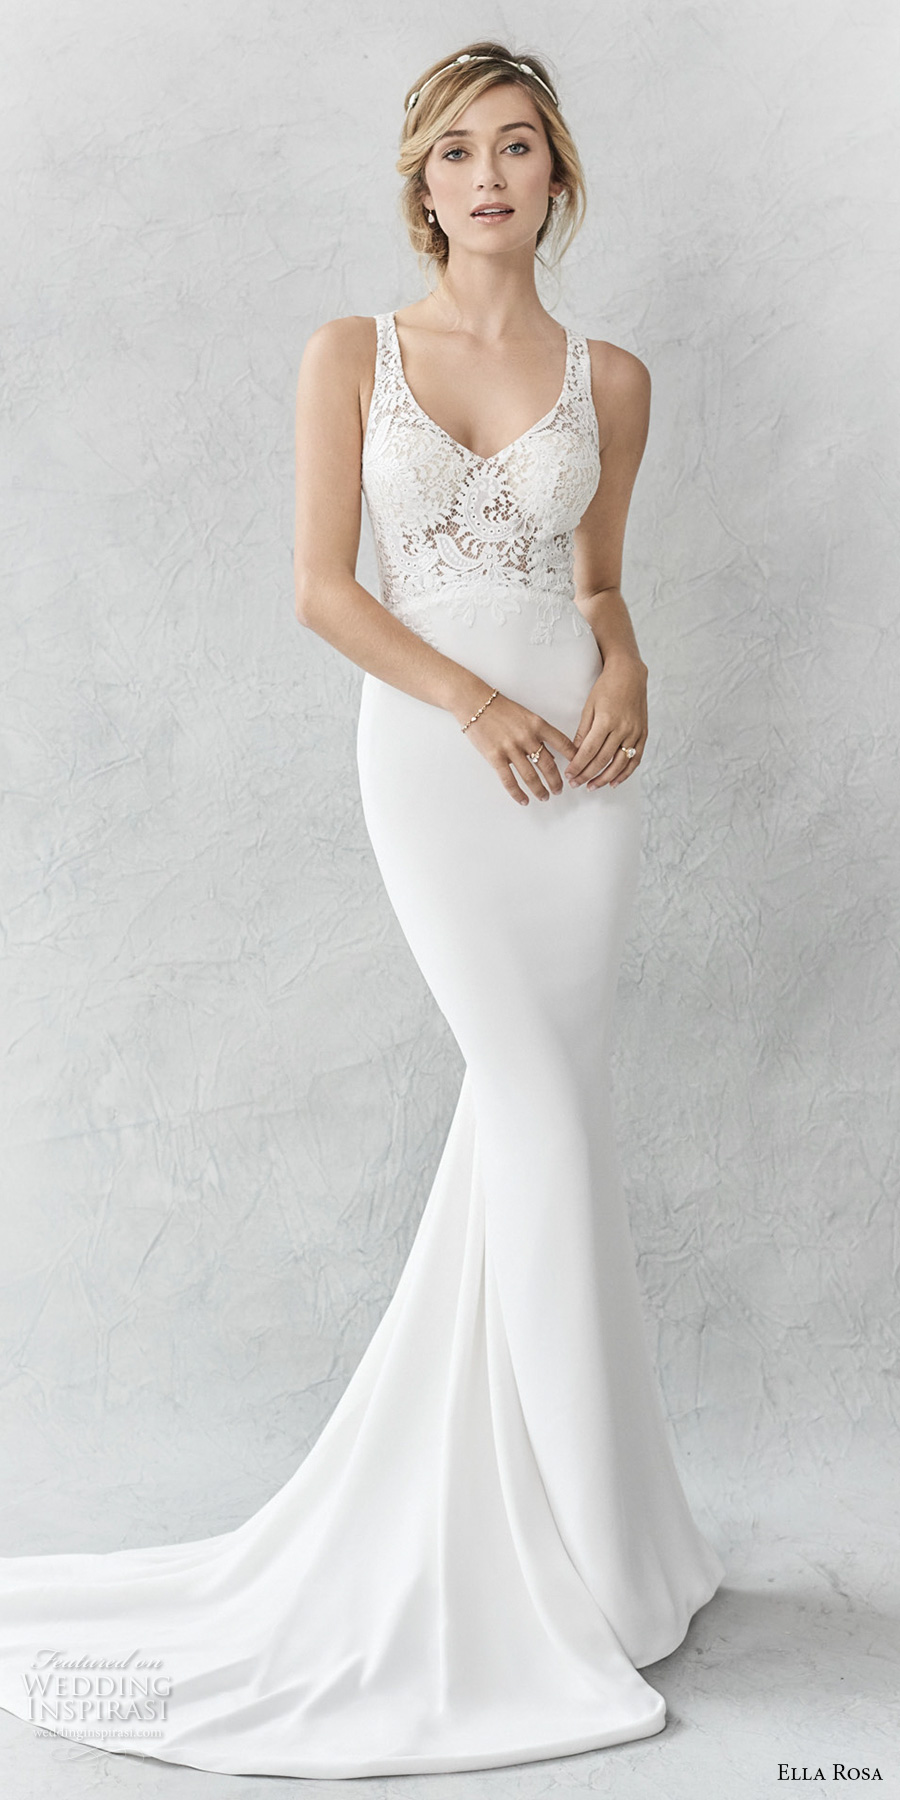 ella rosa spring 2017 bridal sleeveless with strap scoop neck heavily embellished bodice elegant sheath wedding dress rasor back sweep train (360) mv